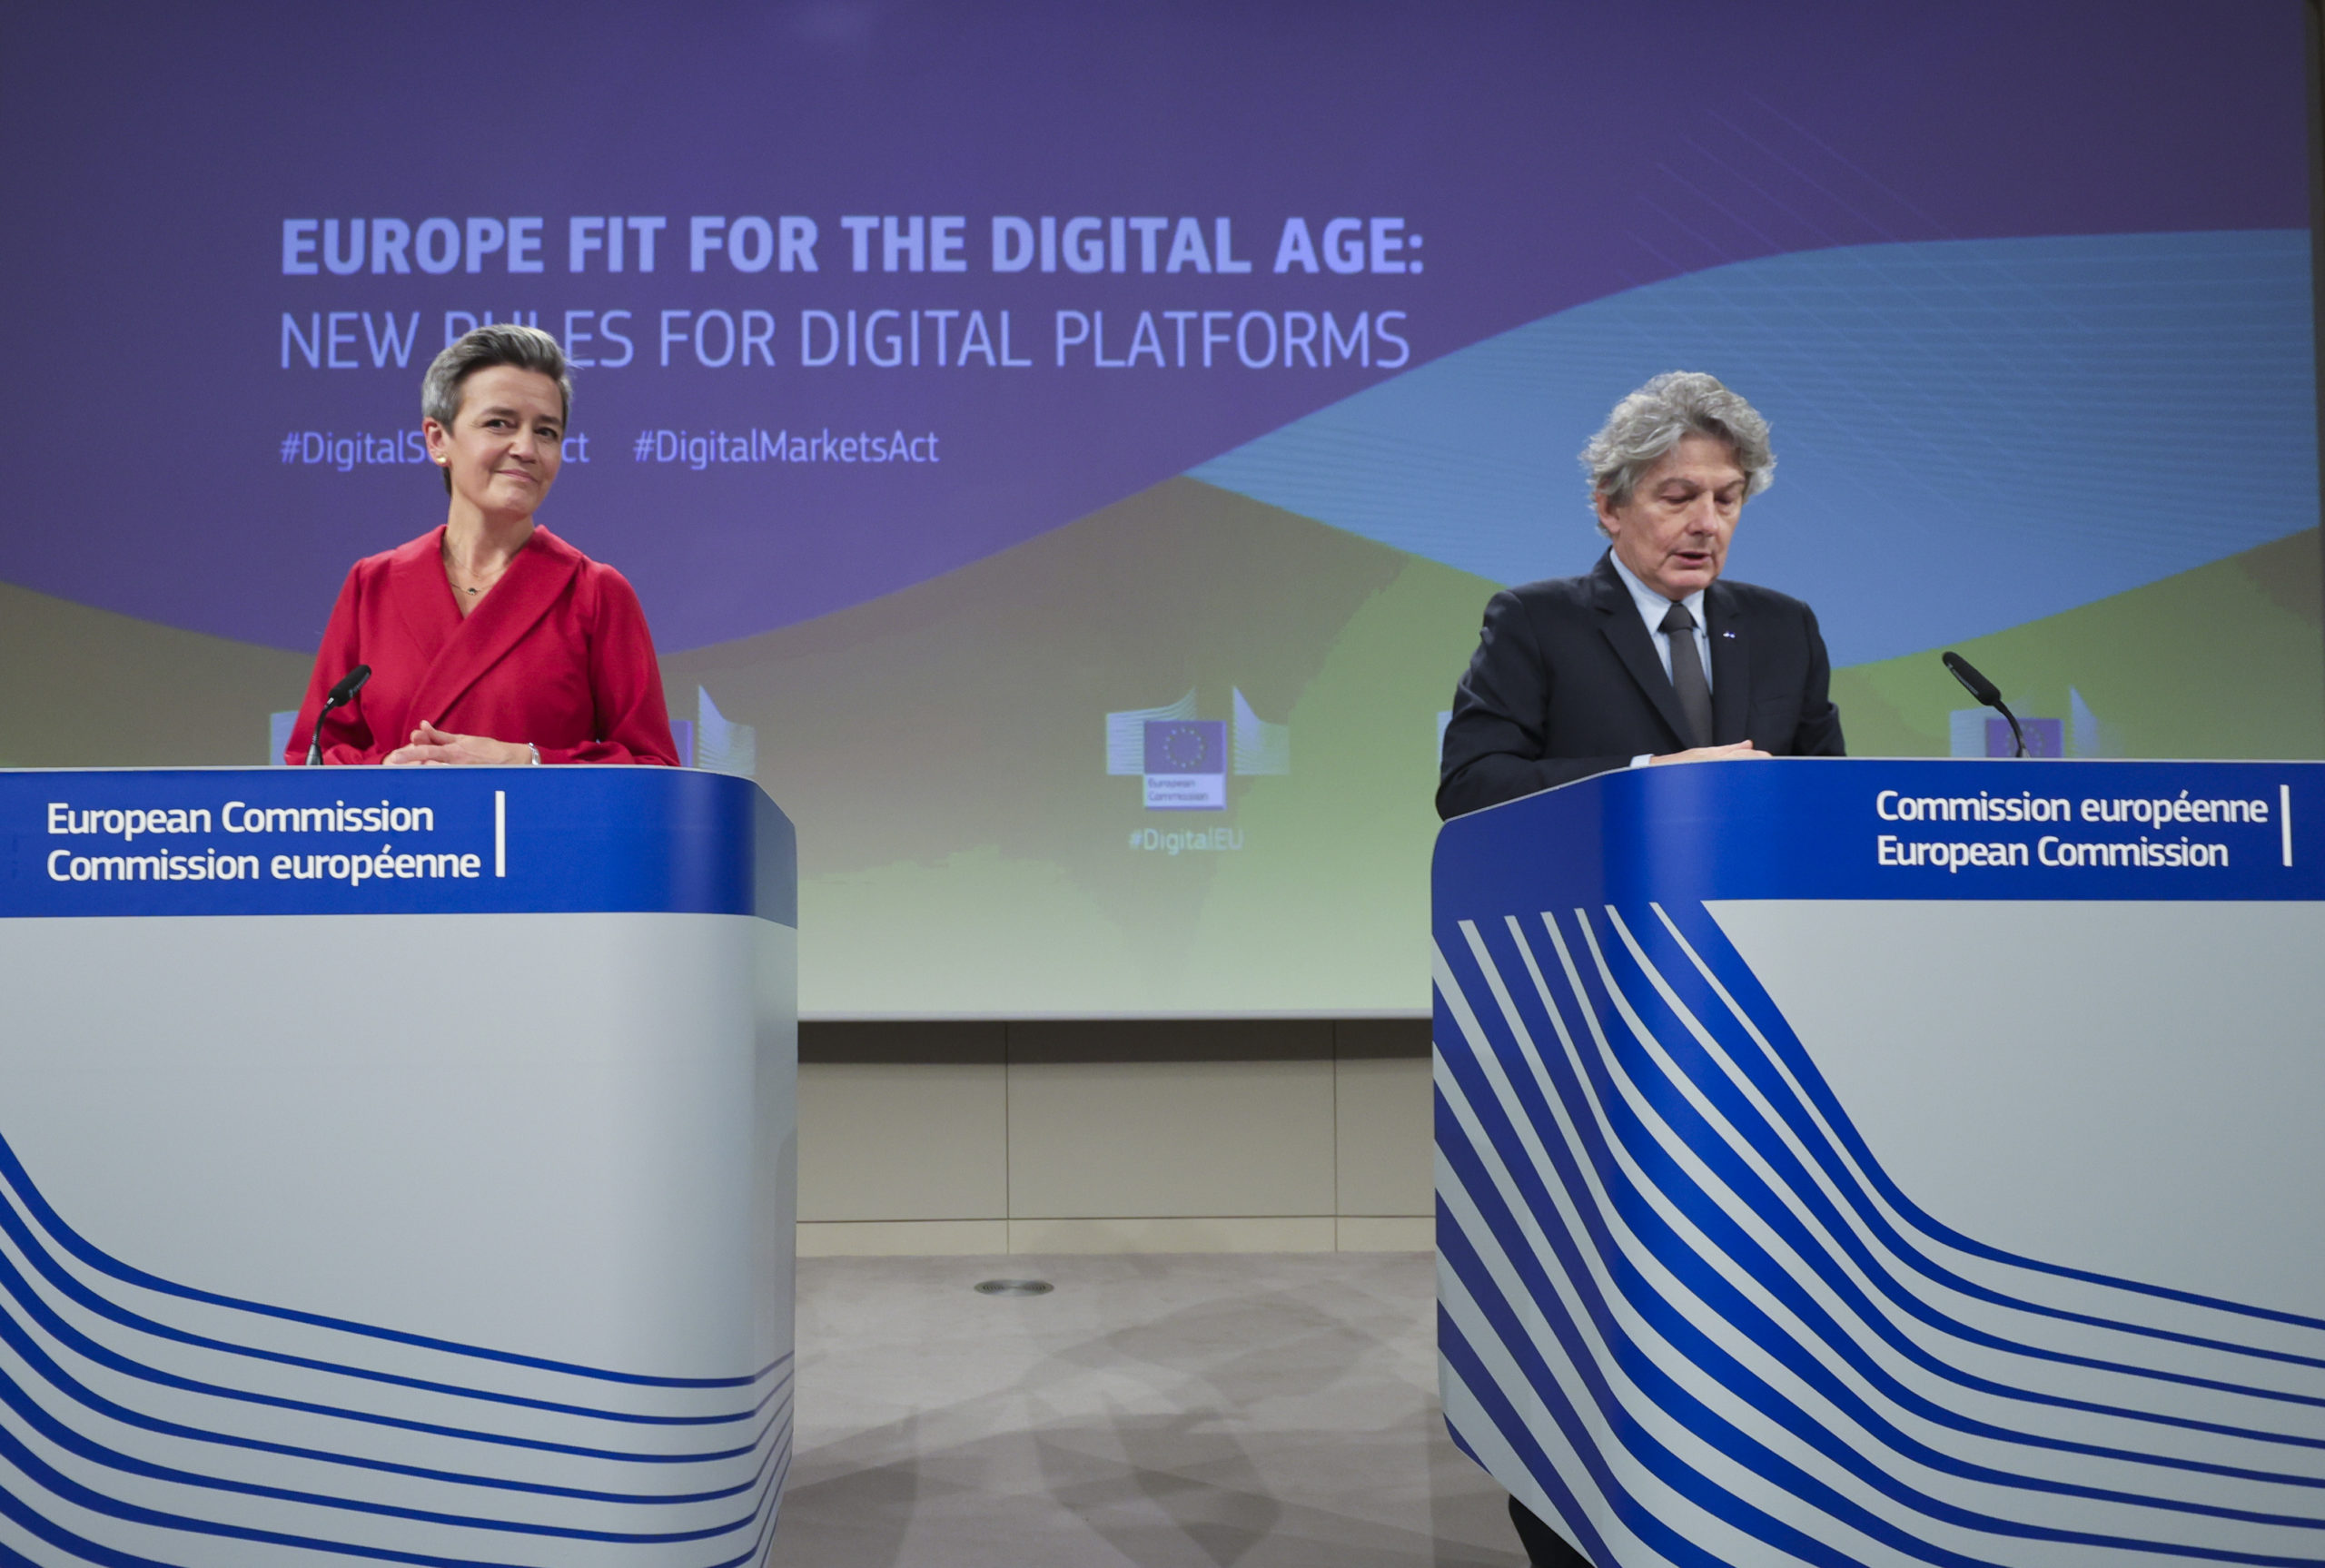 European Commission leader Margrethe Vestager and European Commissioner for Internal Market Thierry Breton attend a press conference on digital fairness on Dec. 15 in Brussels. (Olivier Matthys/Pool/AFP via Getty Images)